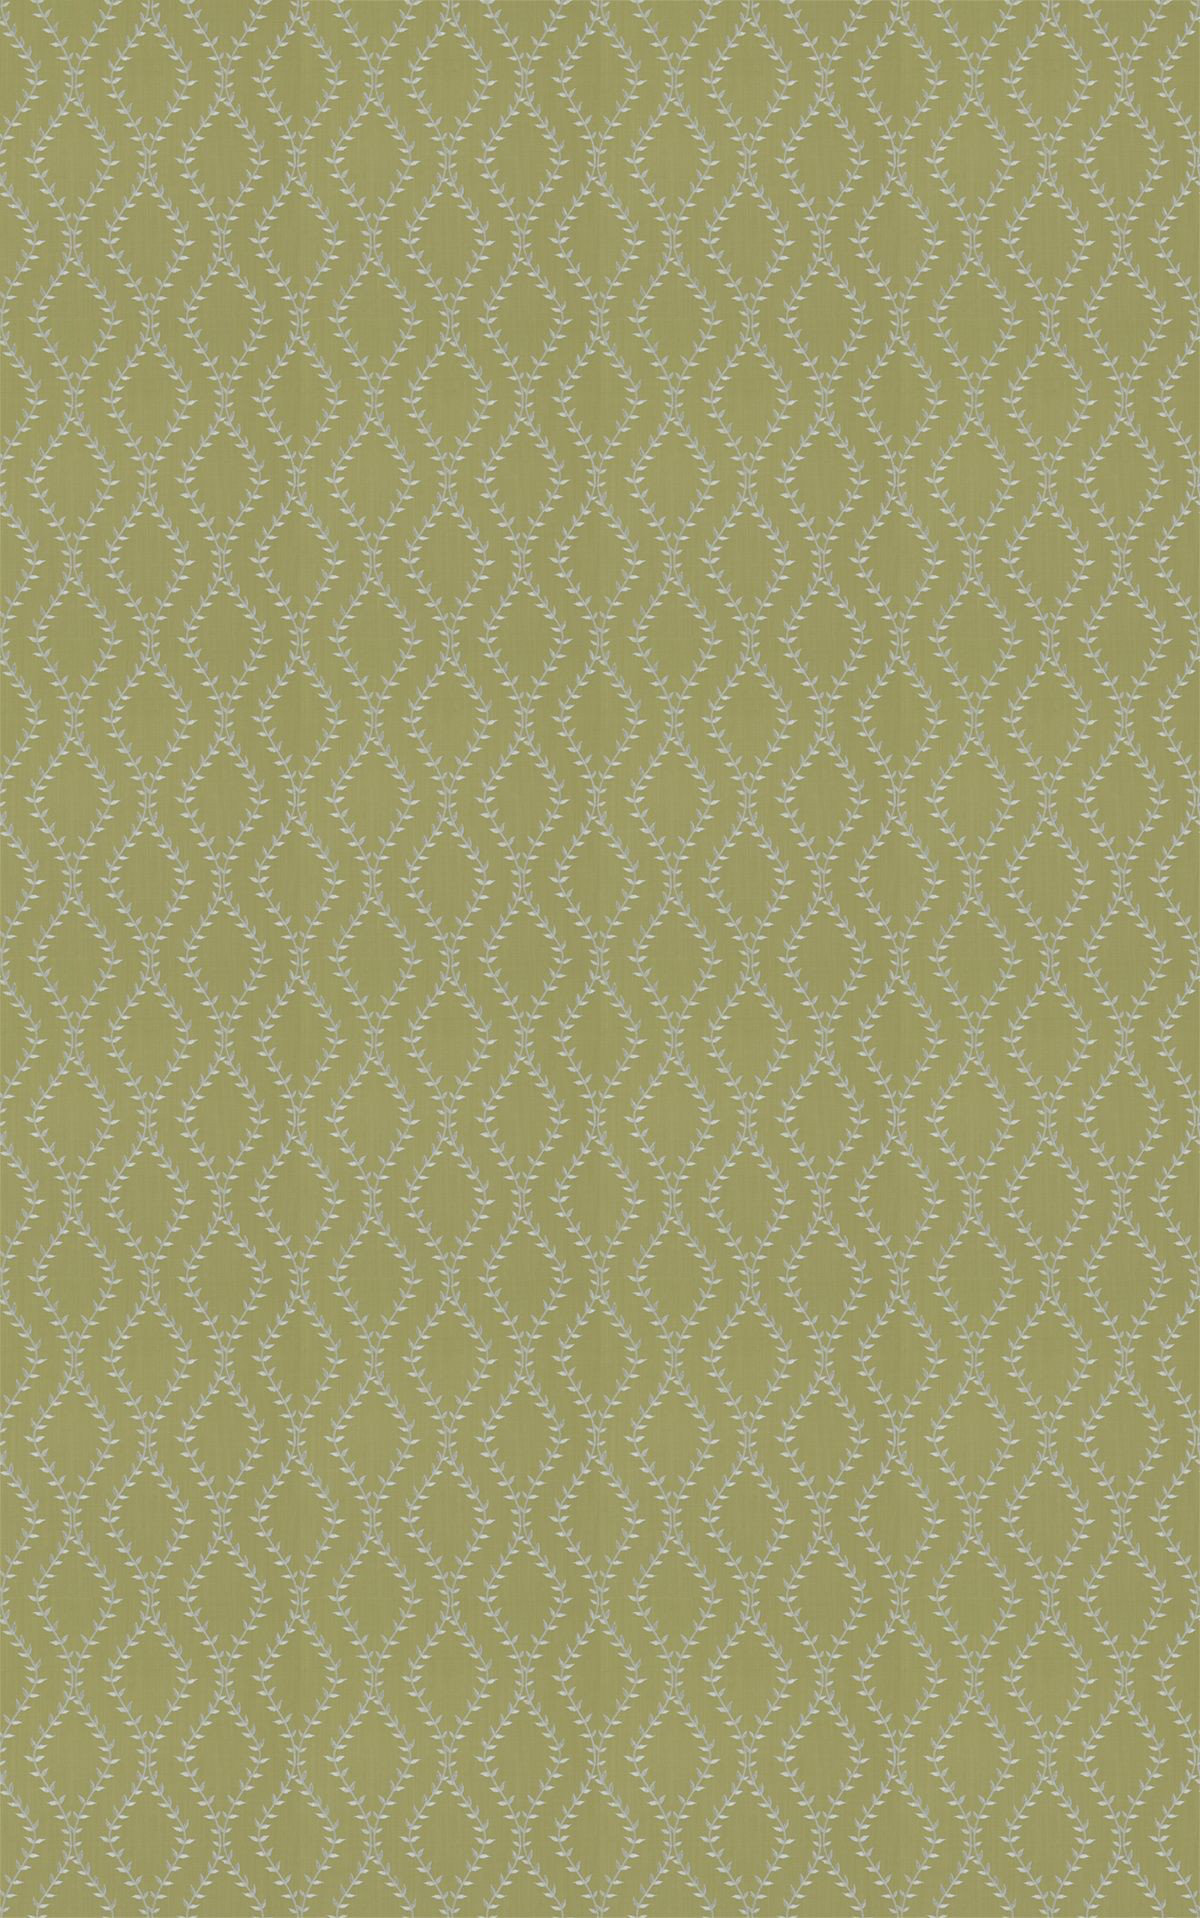 Fern lime by prestigious wallpaper direct for Wallpaper direct